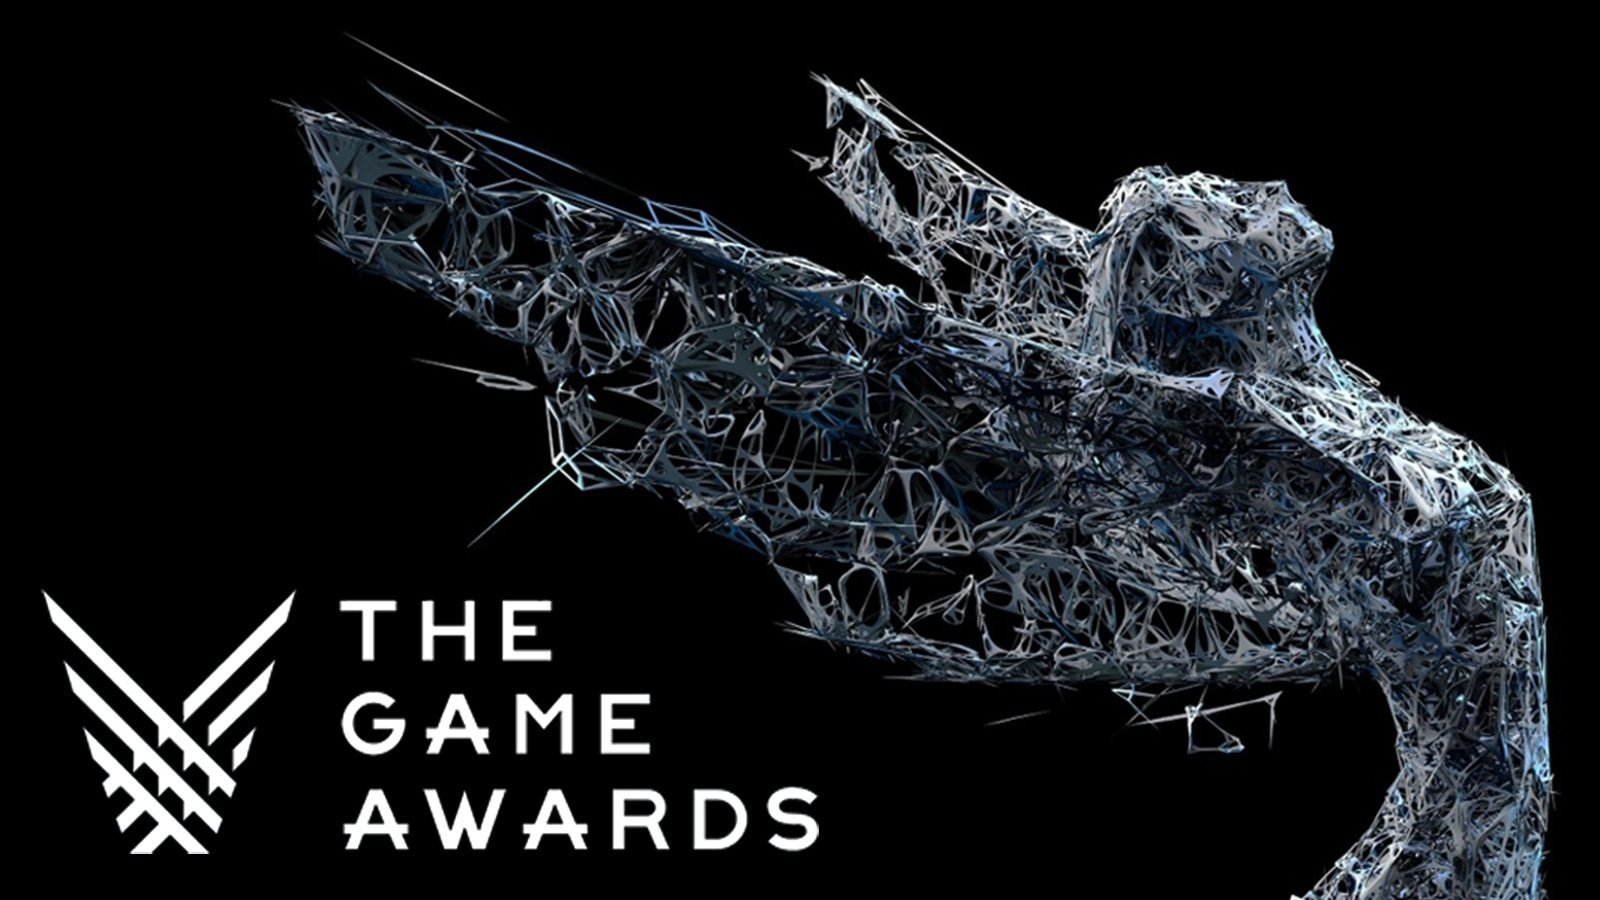 The Game Awards coming December 12